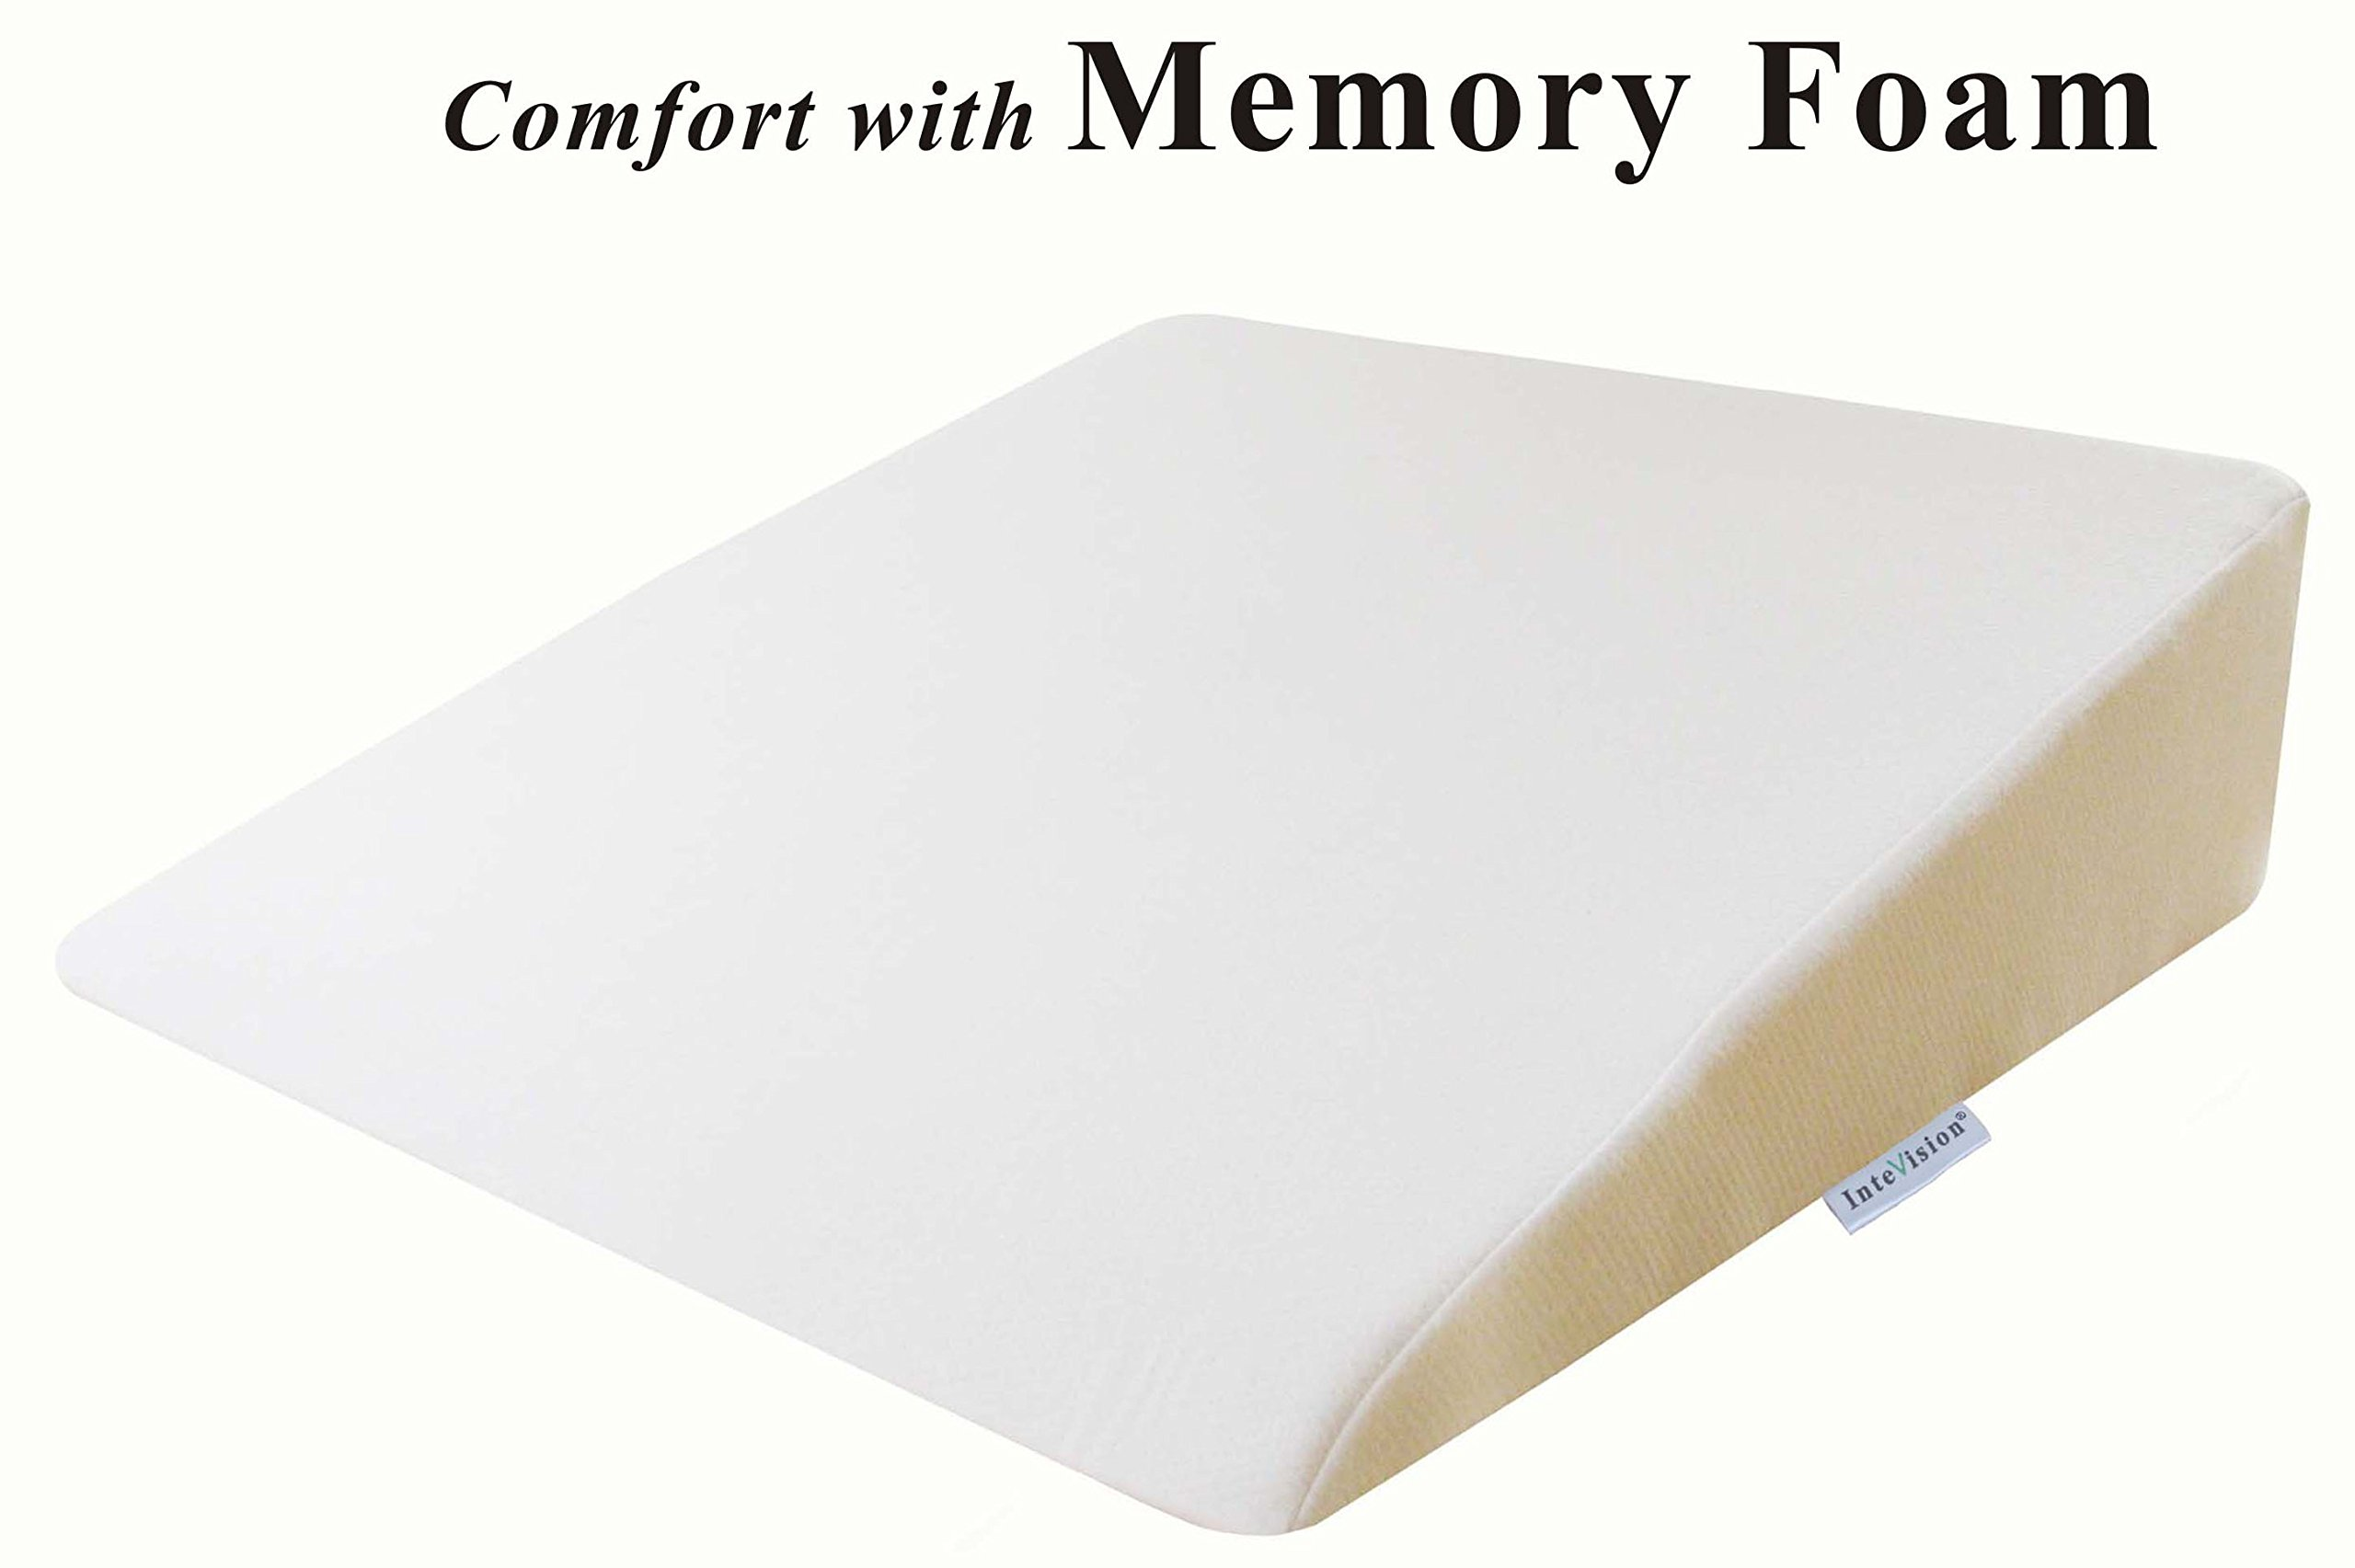 InteVision Foam Bed Wedge Pillow (26'' x 25'' x 7.5'') - 2'' Memory Foam Top Layer with Firm Base Foam & a High Quality Removable Cover - Helps Provide Relief from Acid Reflux, Snoring, Post Surgery by InteVision